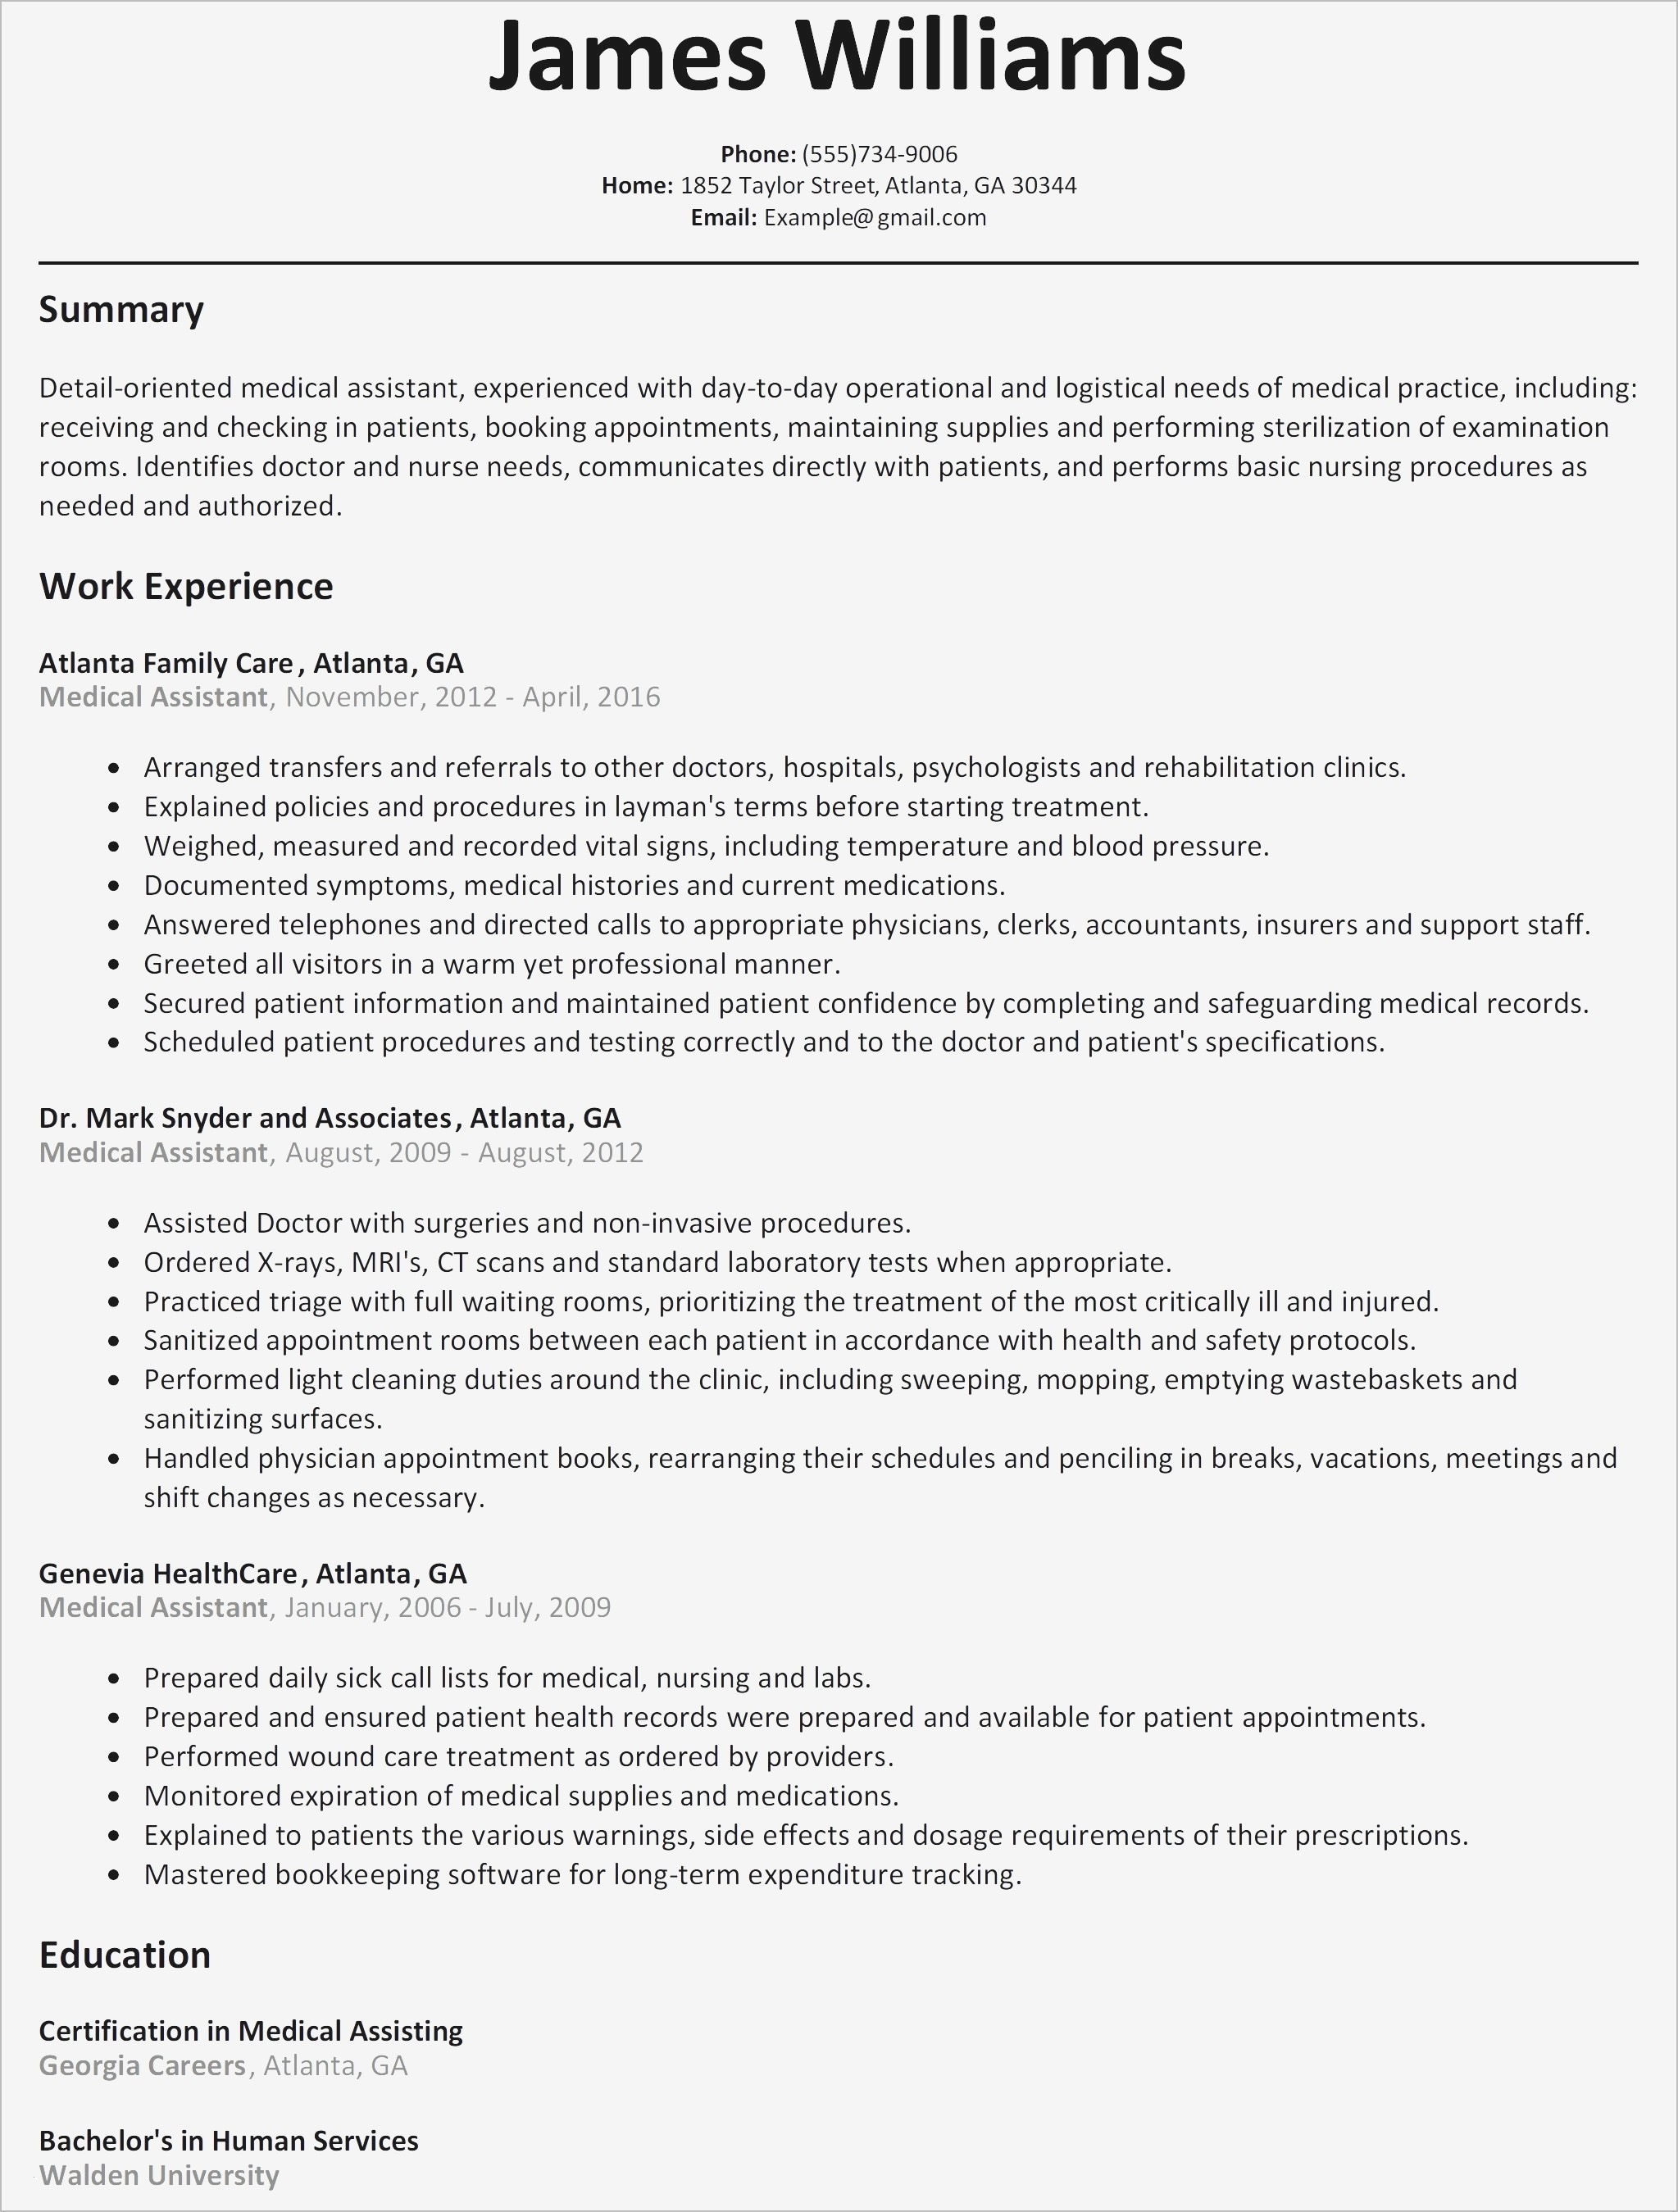 child care resume example-Resume for Mechanics Luxury Automotive Resume Beautiful Bsn Resume Examples Best Nurse Resume 0d · Child Care Resume Cover Letter 14-j